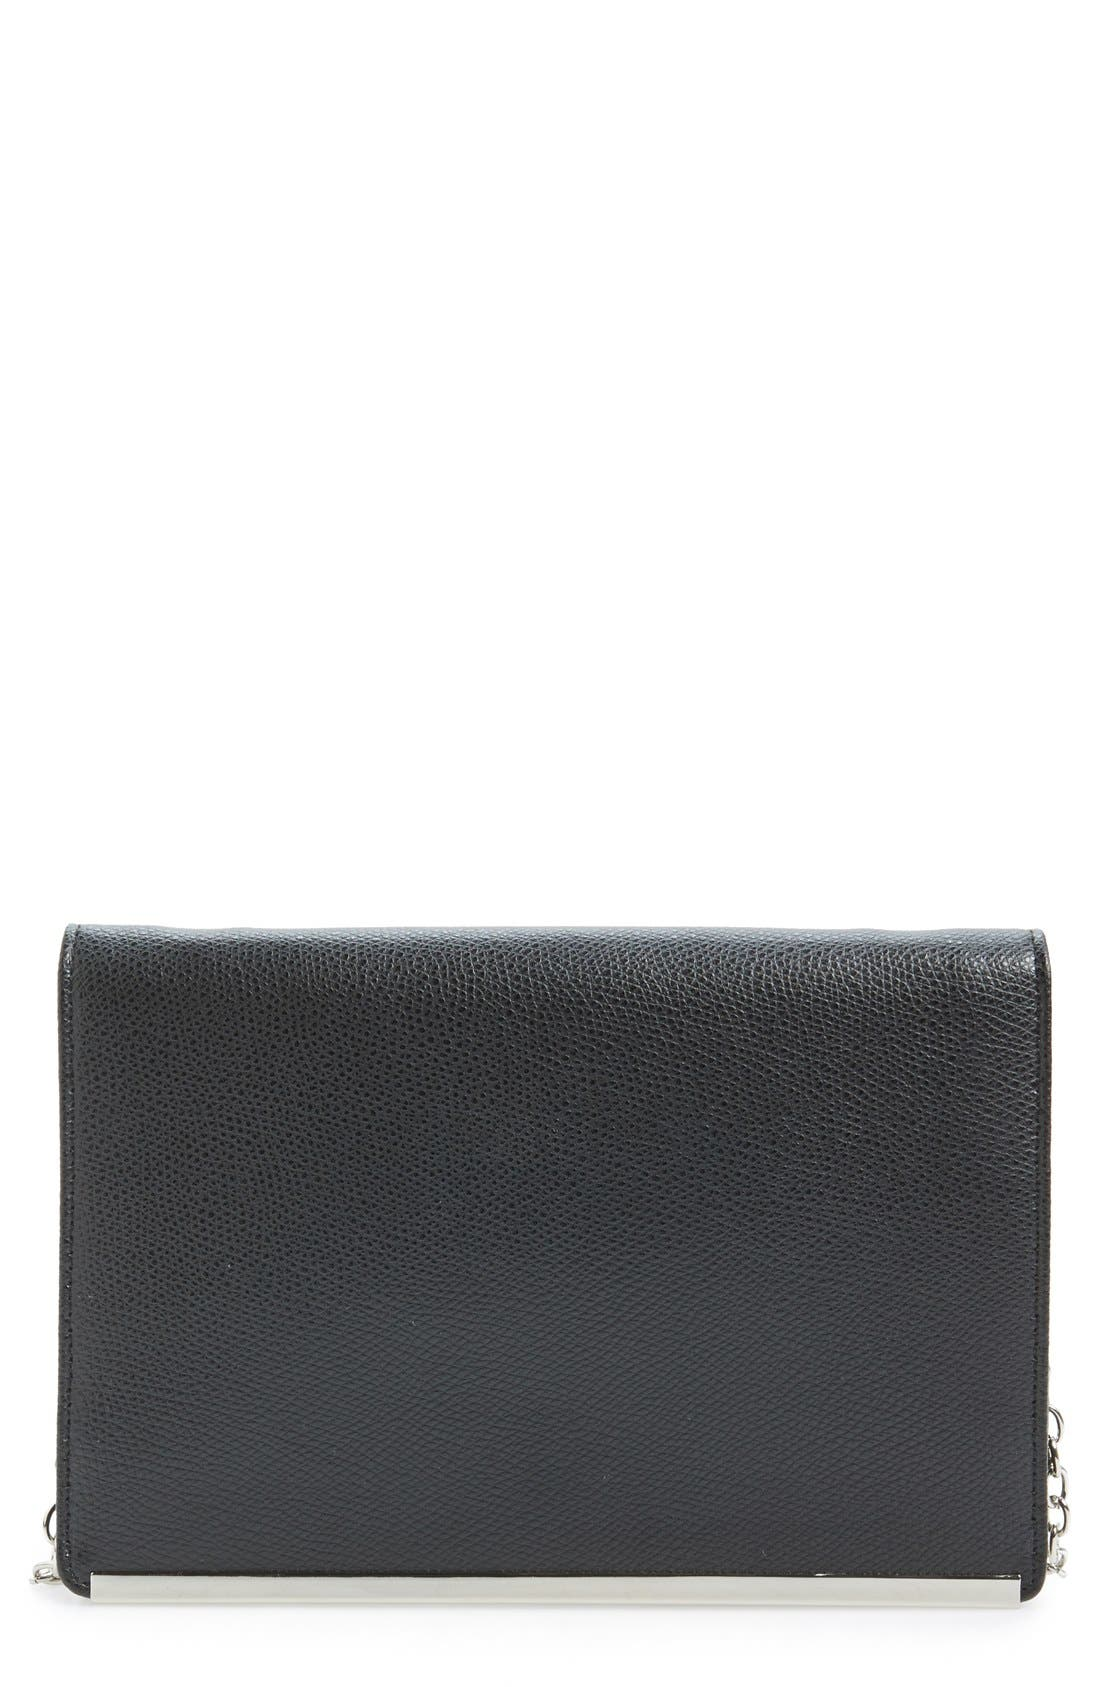 Crossbody Clutch Wallet, Main, color, 001